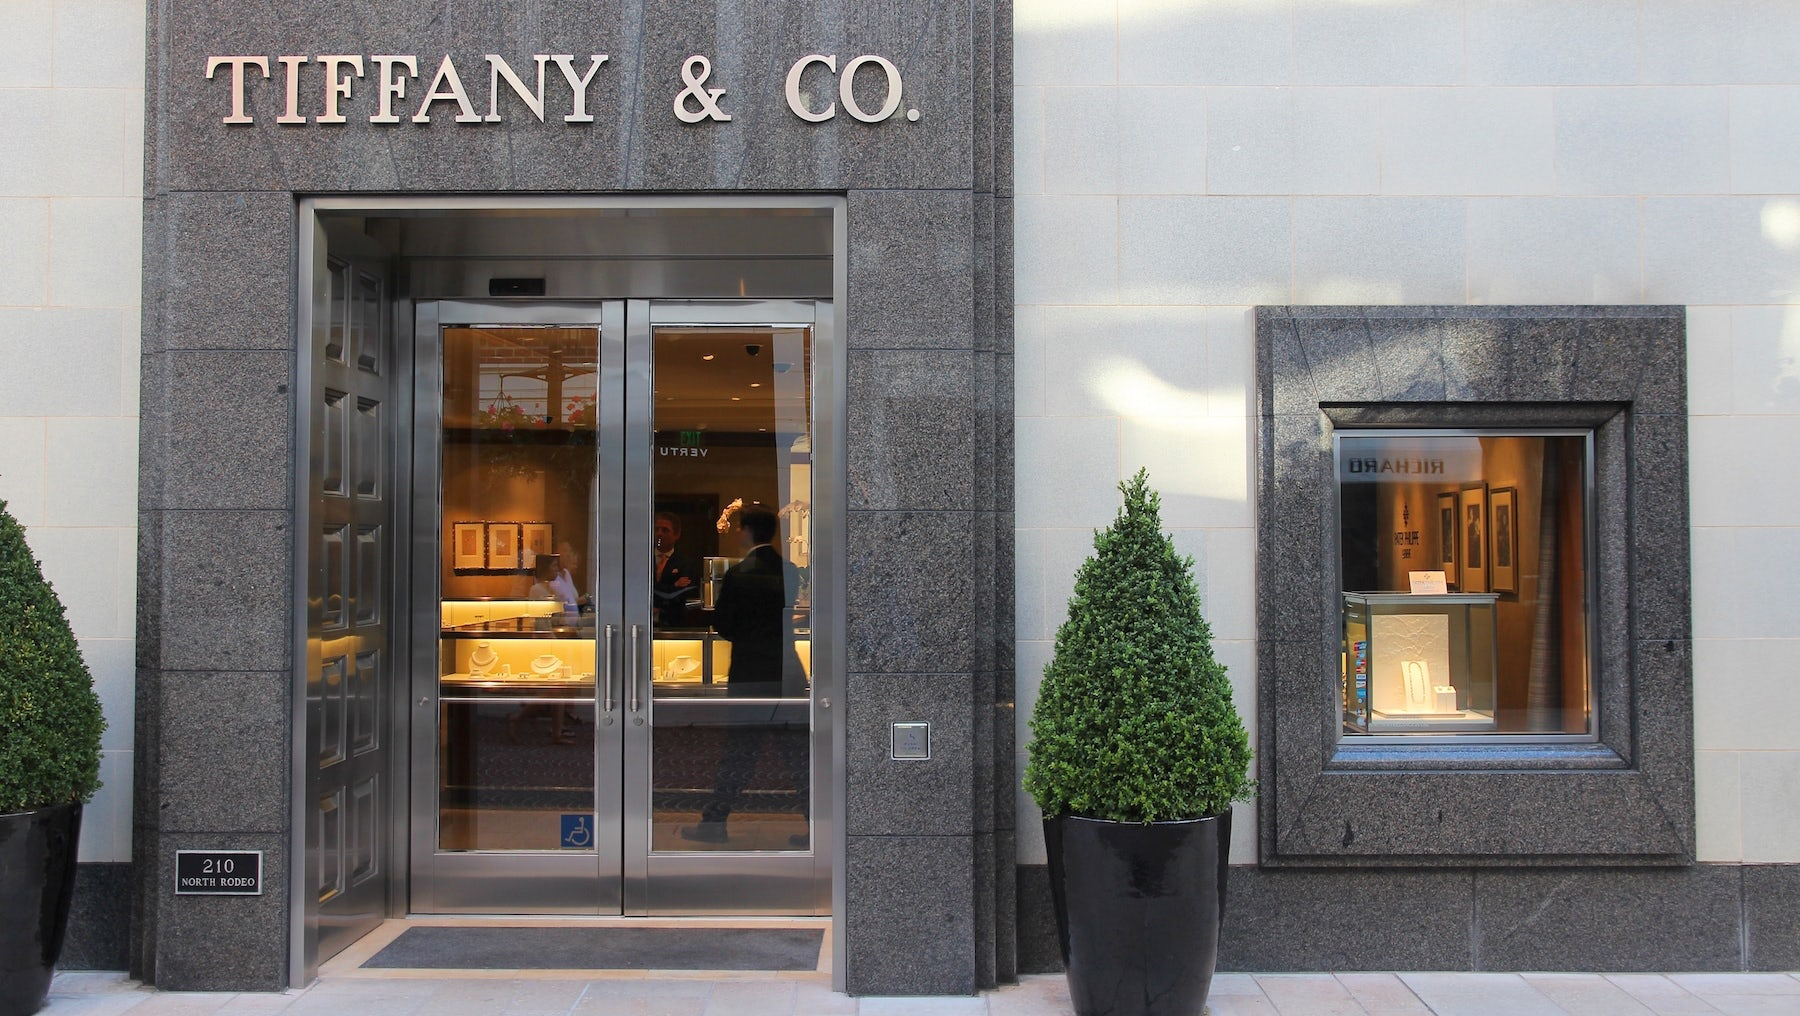 Tiffany Store | Source: Shutterstock